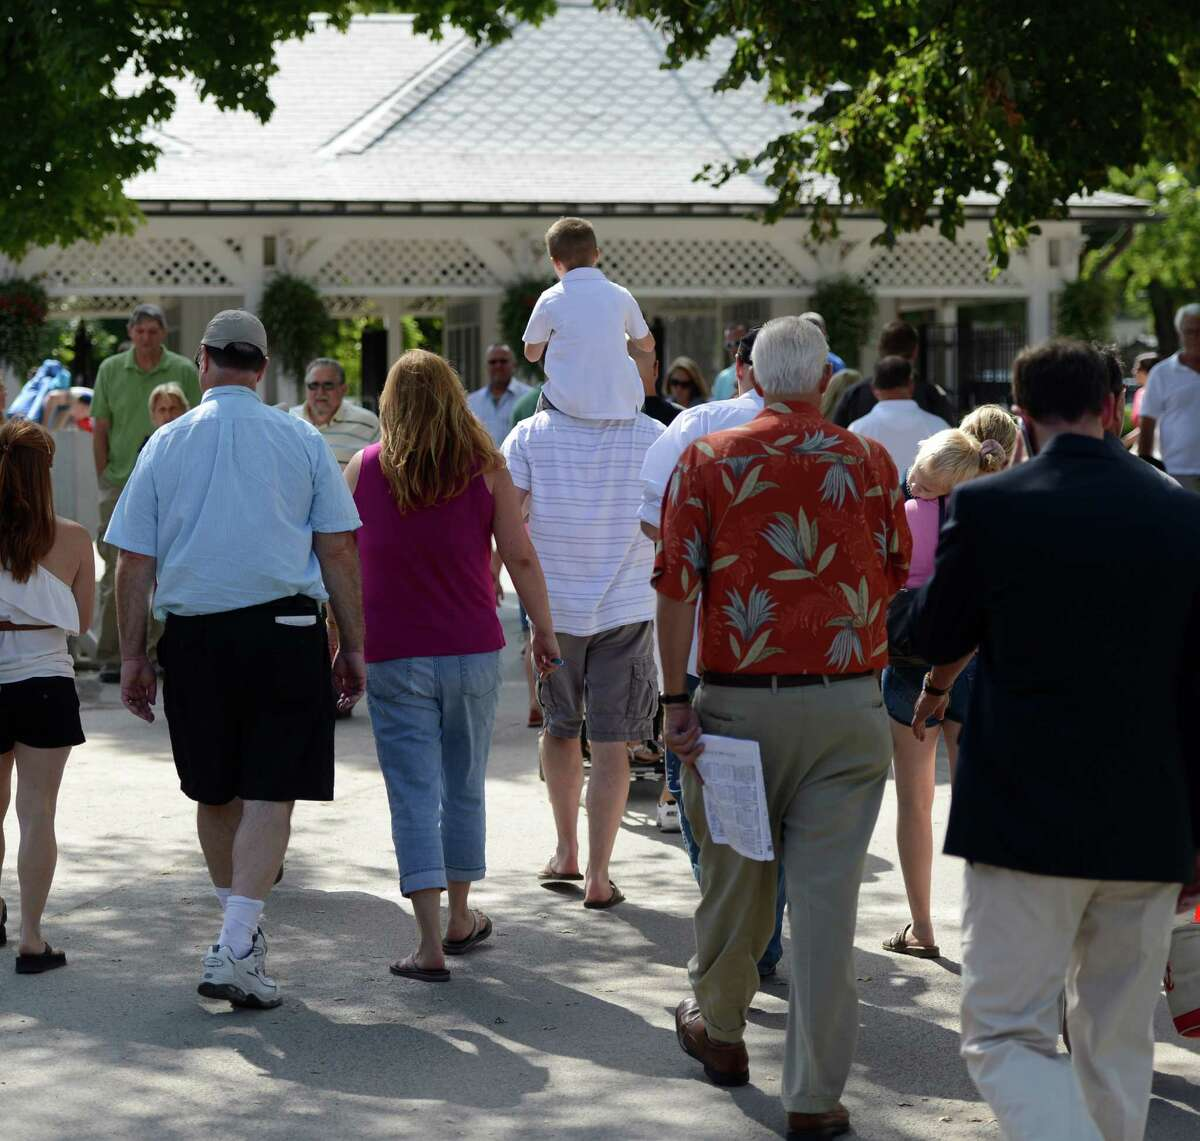 Patrons head for the gate on the final day of the 2012 race meeting at the Saratoga Race Course in Saratoga Springs, N.Y. Sept. 2, 2012. (Skip Dickstein/Times Union)